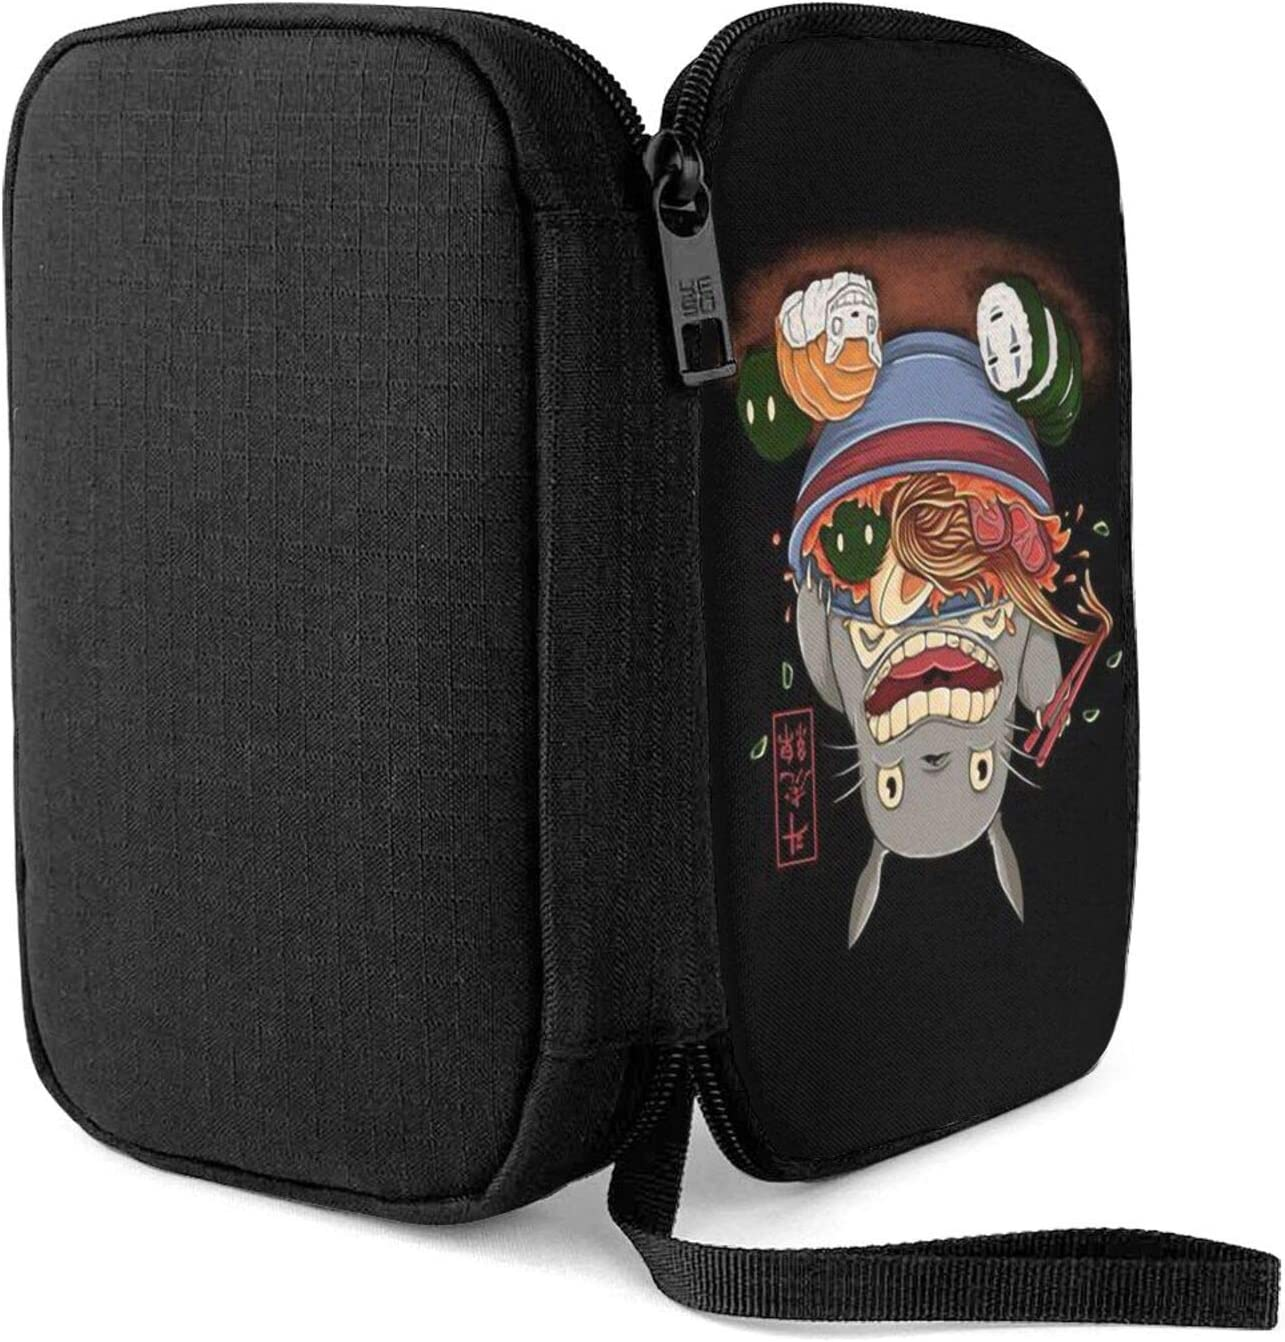 Earphone and Electronic Product Data Cable Storage Bag Hxuedan Studio Ghibli Anime Art The Data Cable Storage Bag is A Portable and Independent Design SuitableVFor Travelers to Place The Data Cable